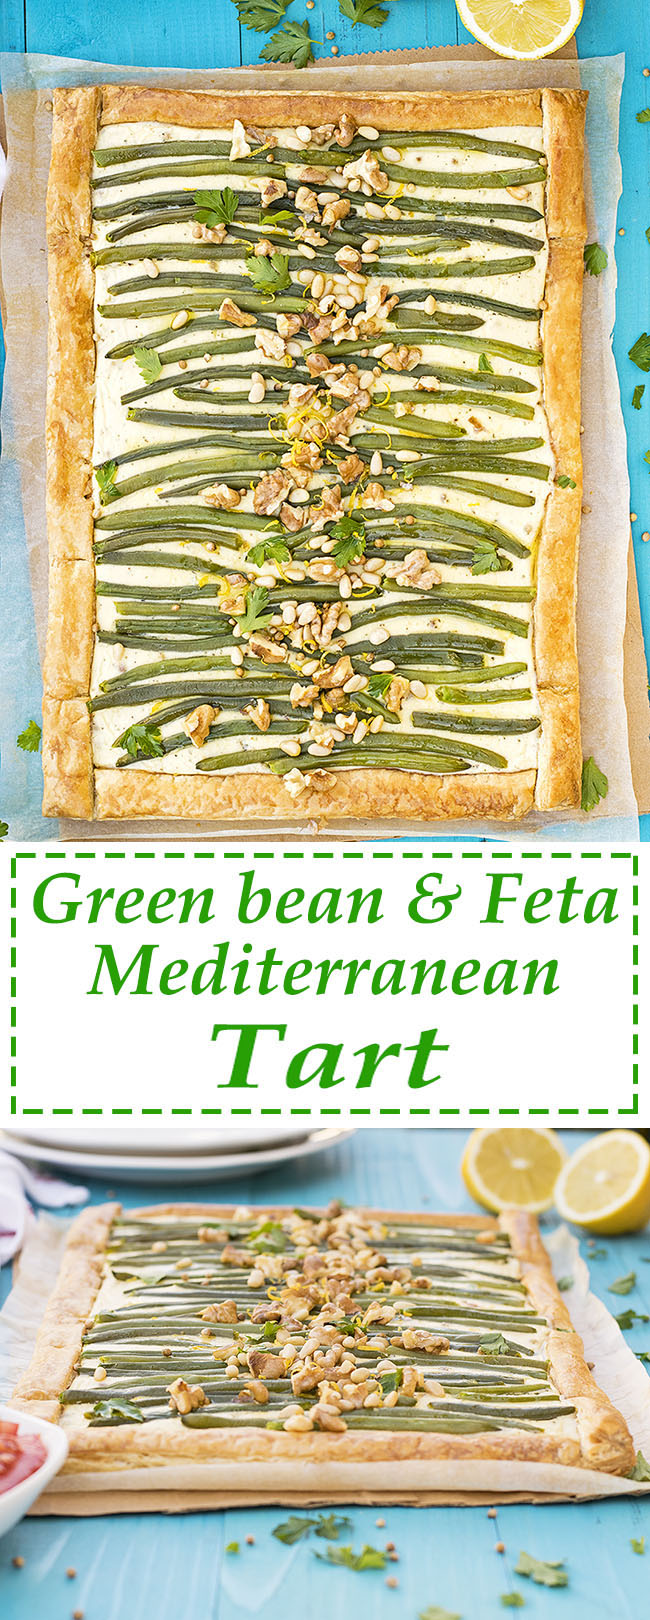 Green bean and feta mediterranean tart with puff pastry 7